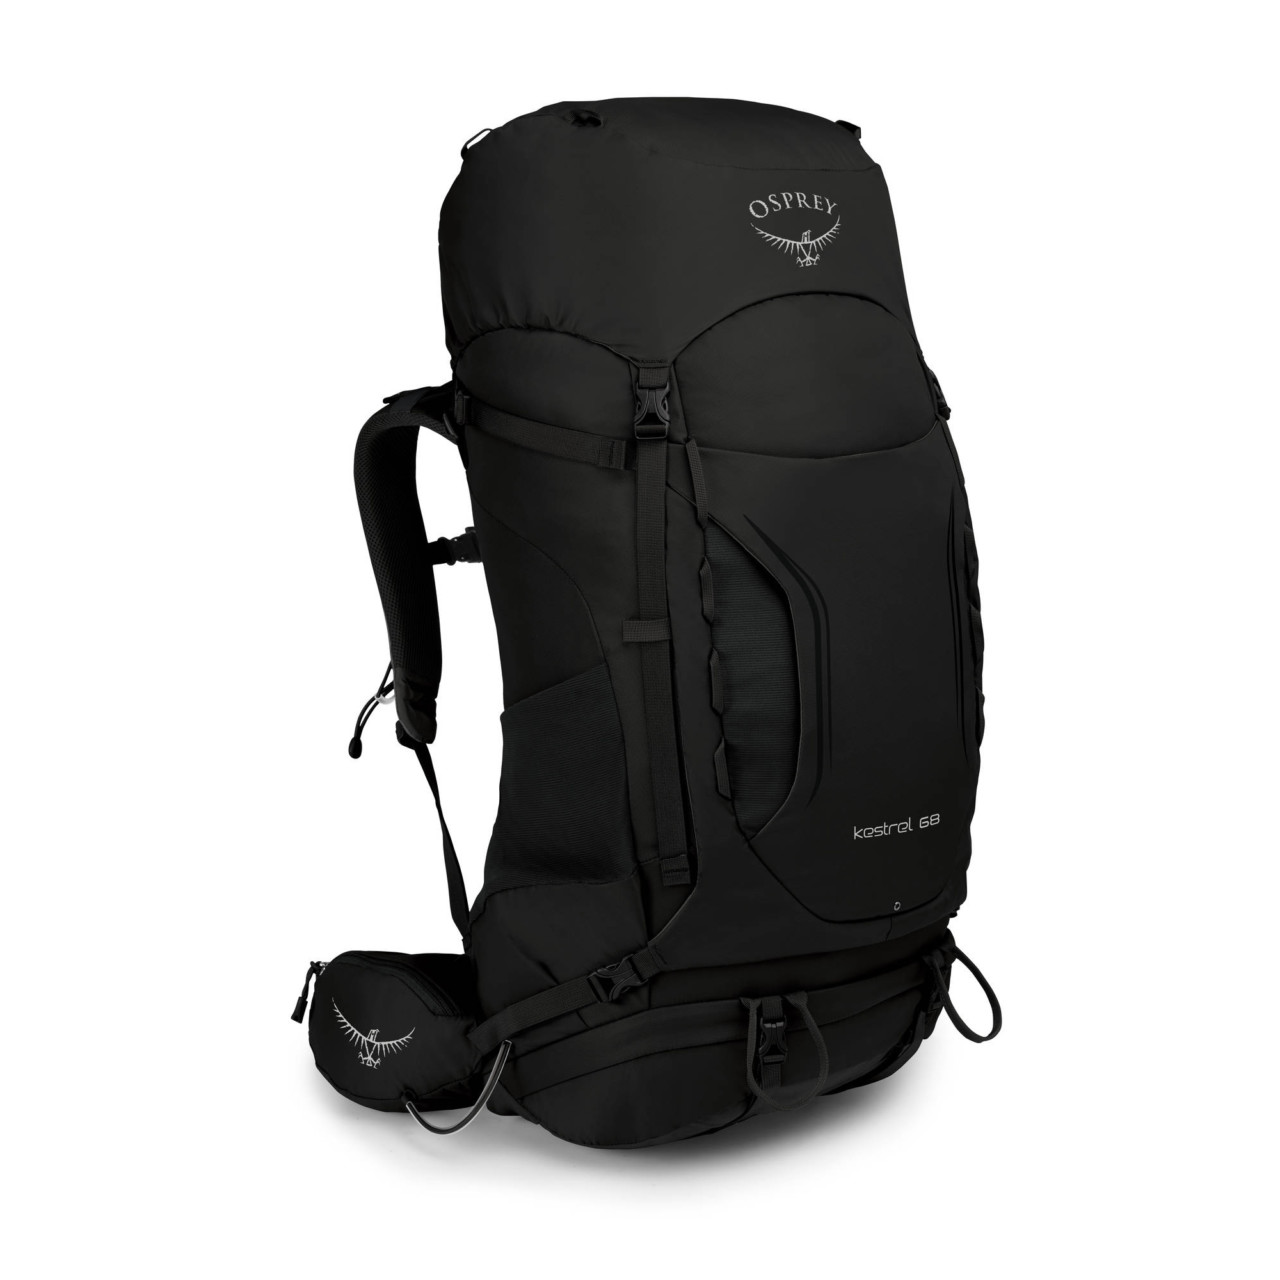 Osprey backpack Kestrel 58L